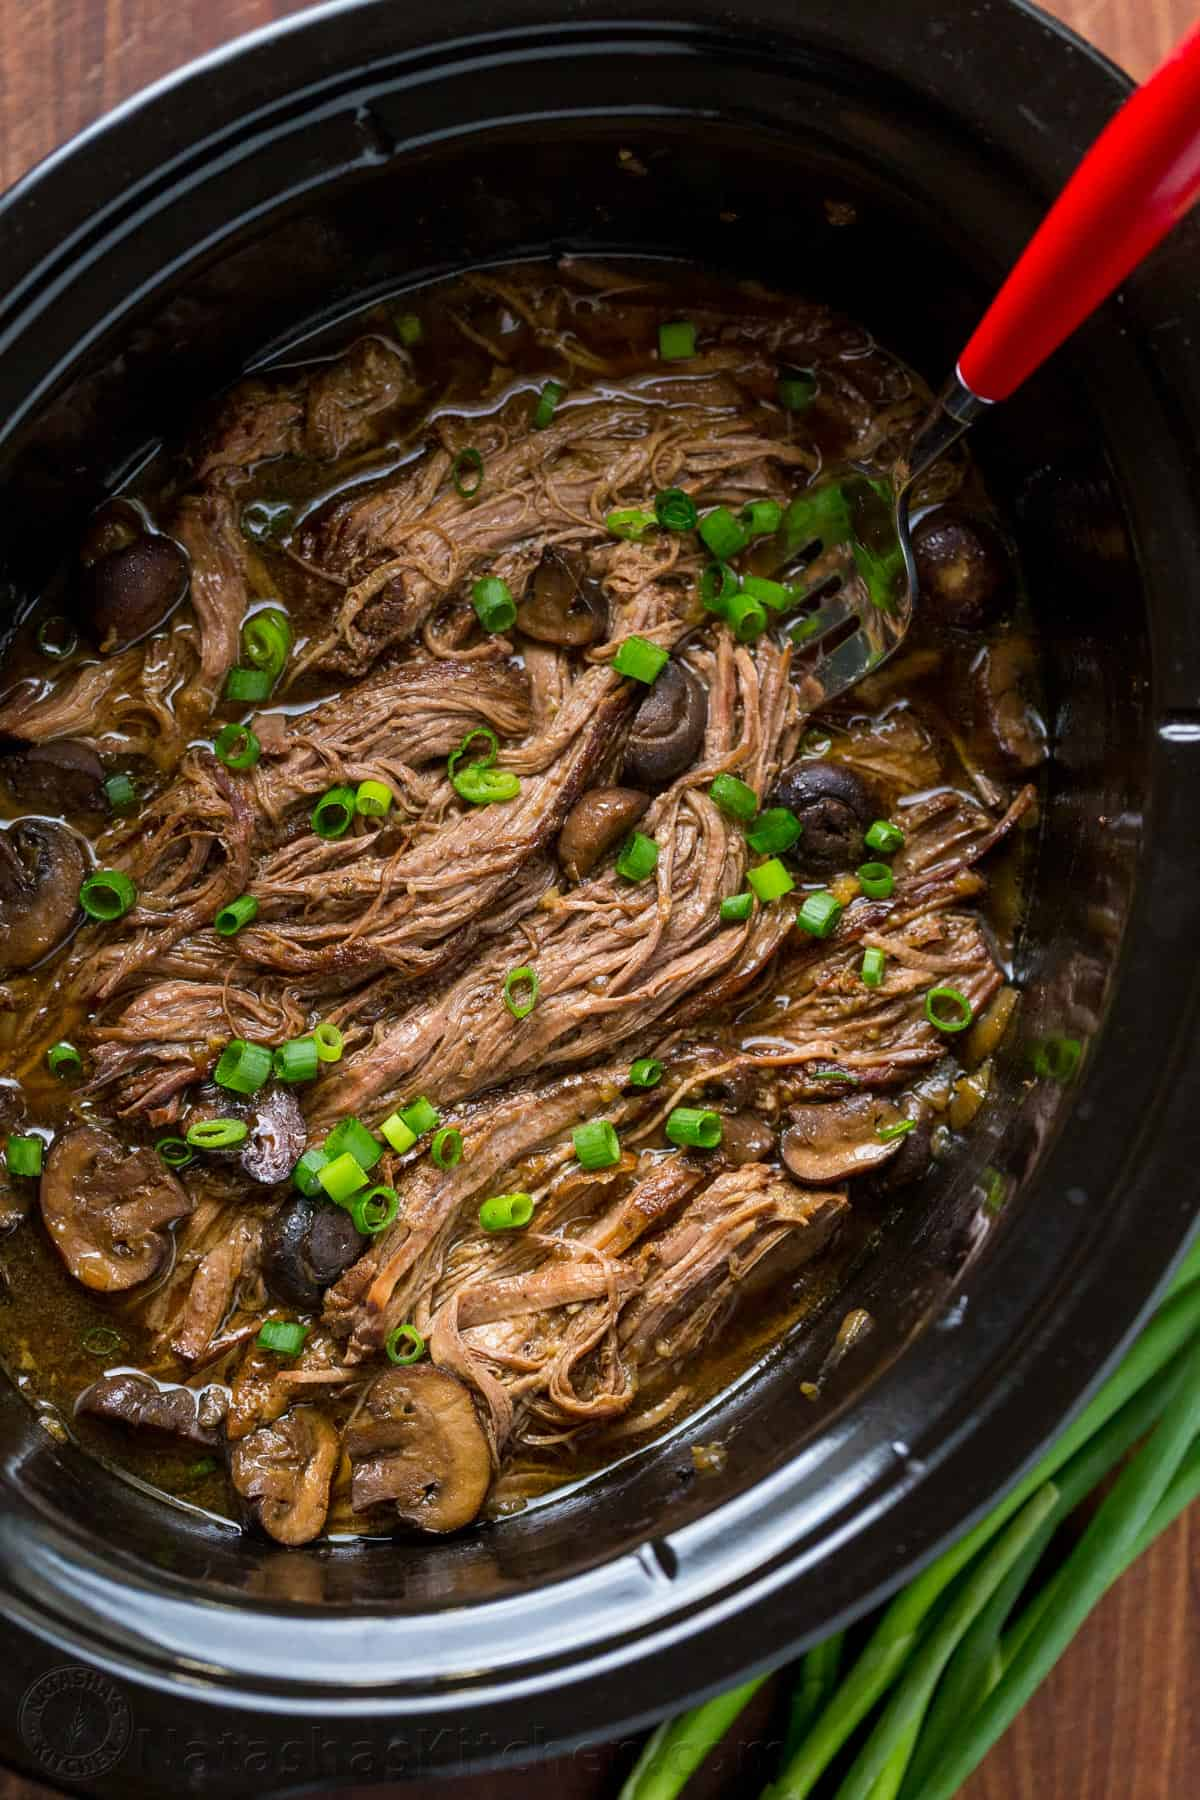 Pound Turkey In Slow Cooker Kitchen Recipes